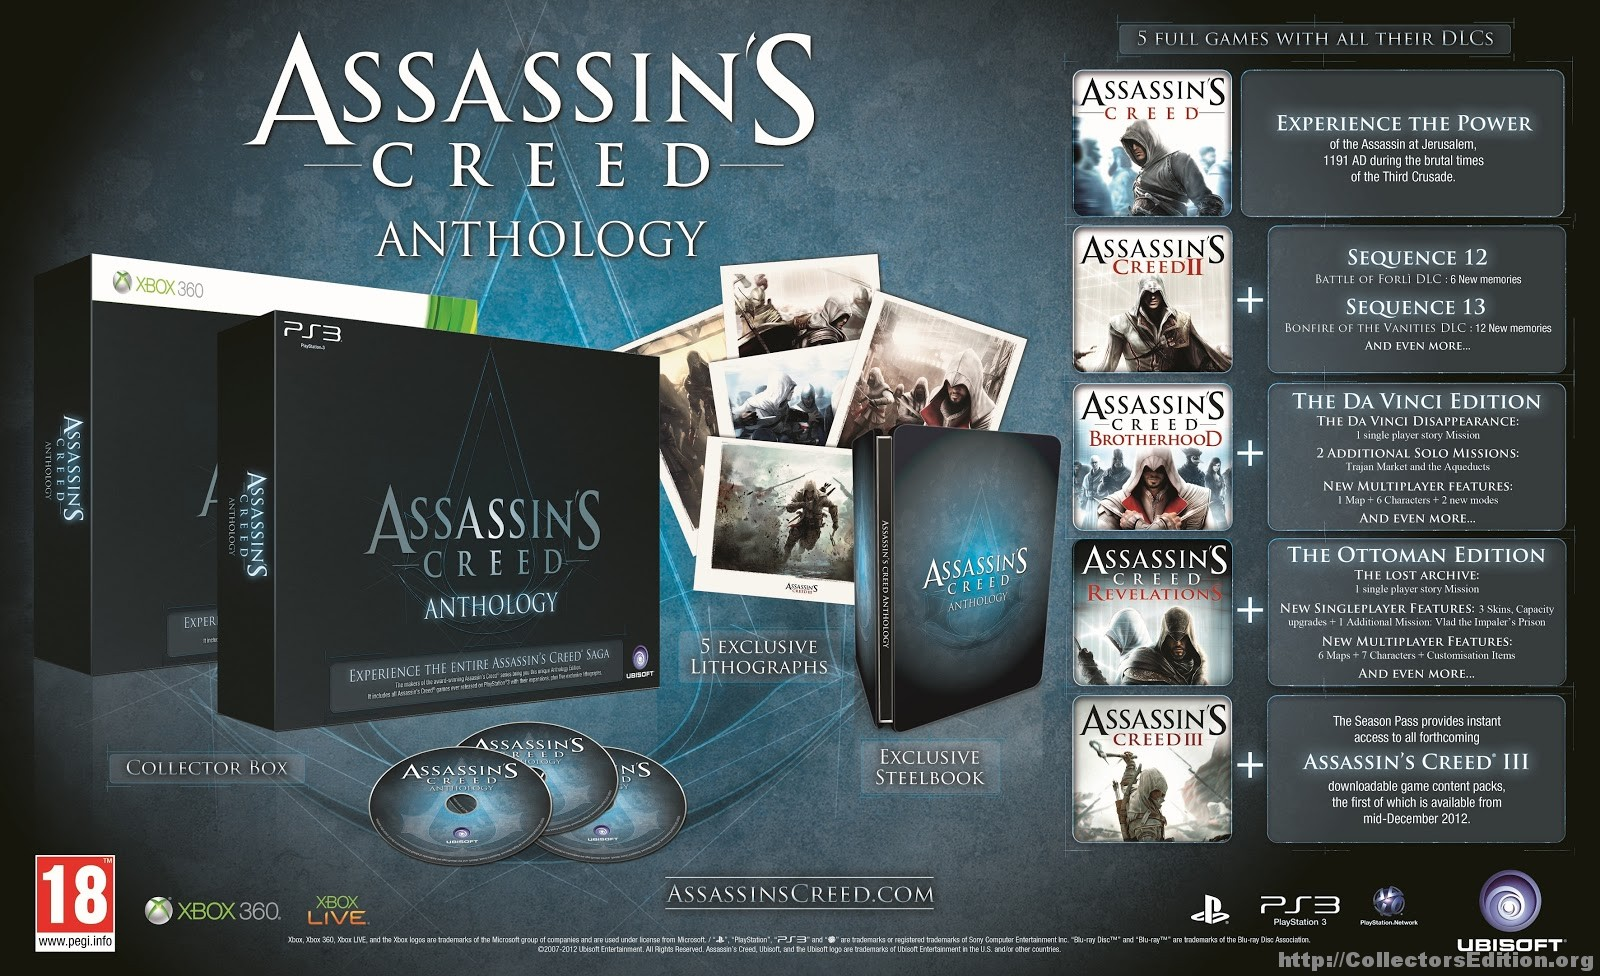 Assassin's Creed, Antology